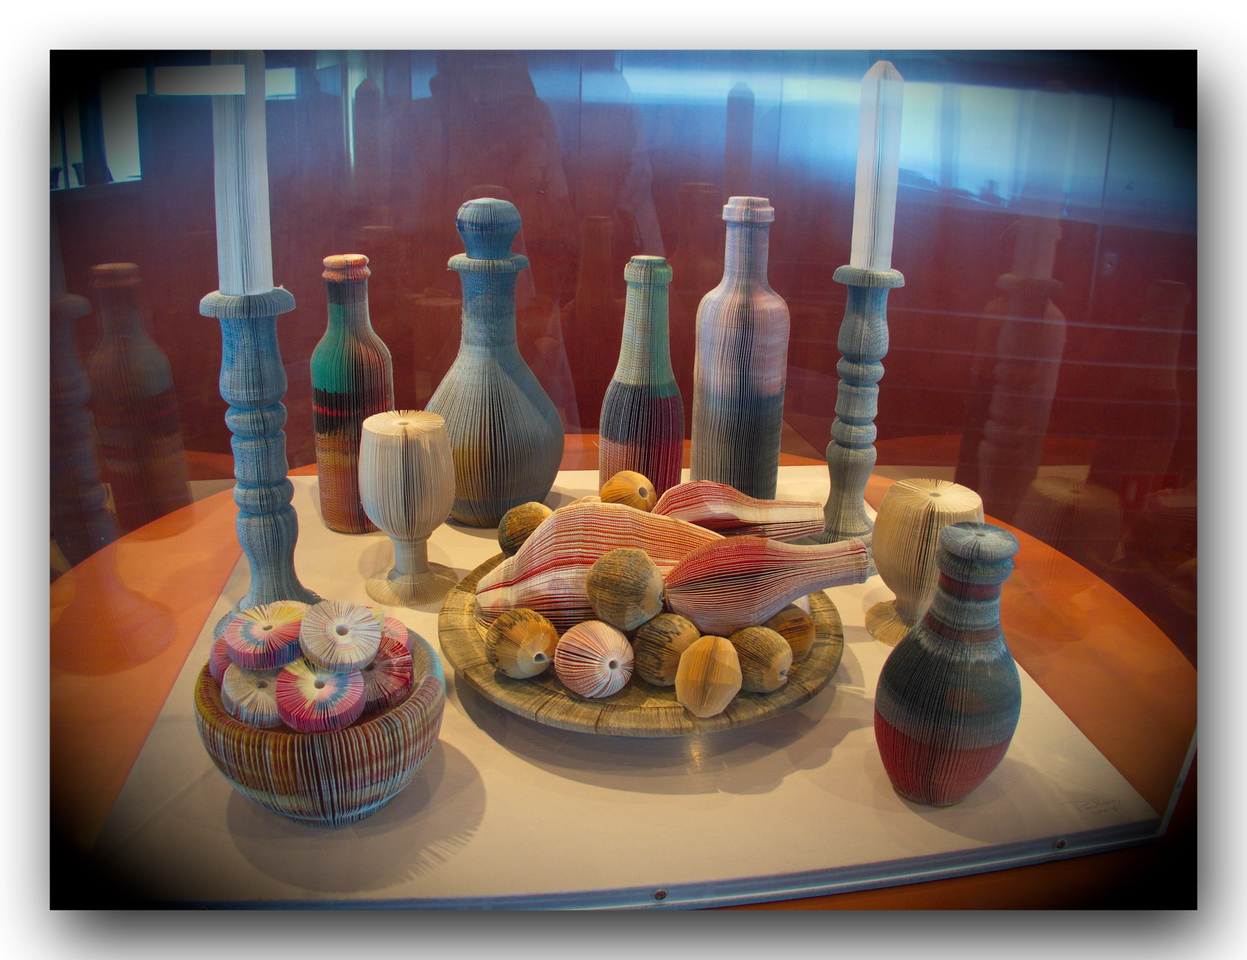 Candles, Bottles, Goblets and Fruit